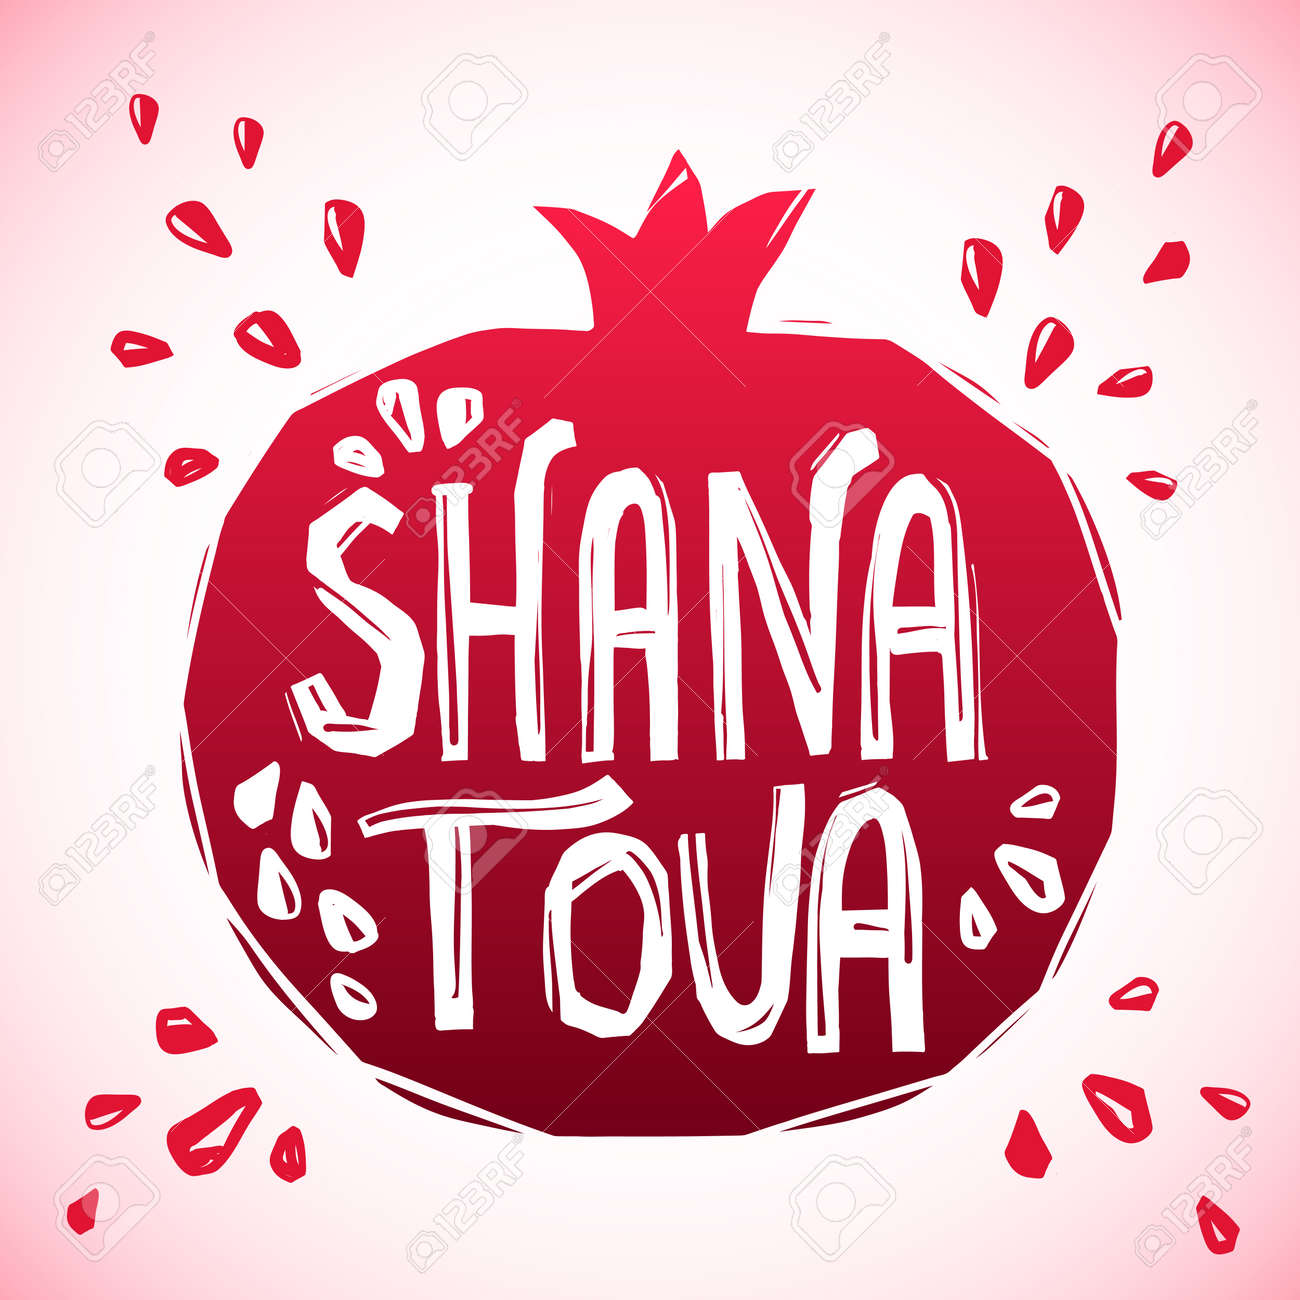 Rosh hashanah greeting card with pomegranate shana tova or jewish rosh hashanah greeting card with pomegranate shana tova or jewish new year symbols stock vector kristyandbryce Choice Image